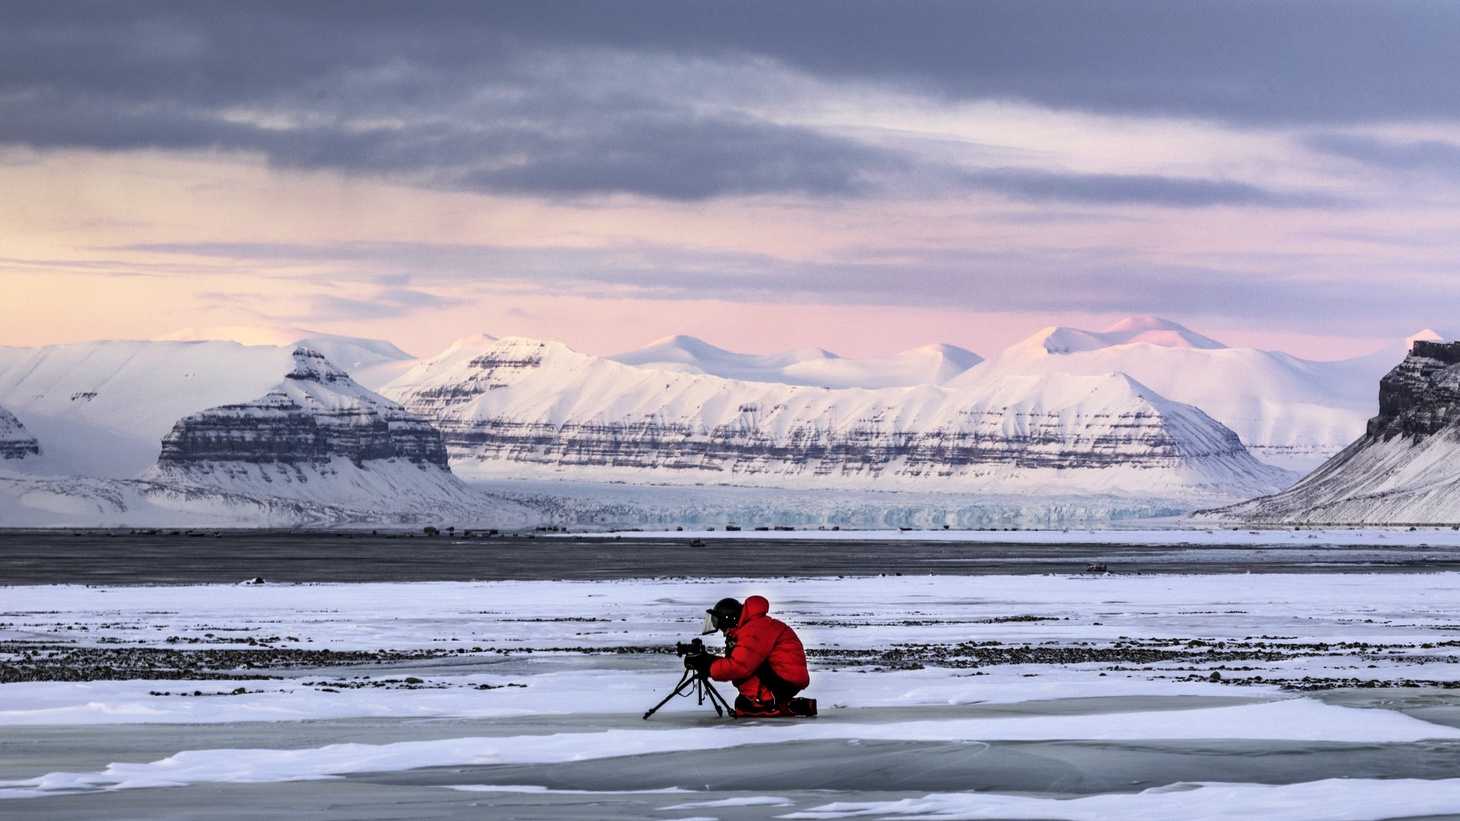 Camera Operator Steve Gute photographs the Tempelfyorden, Svalbard, Norwegian Territory.